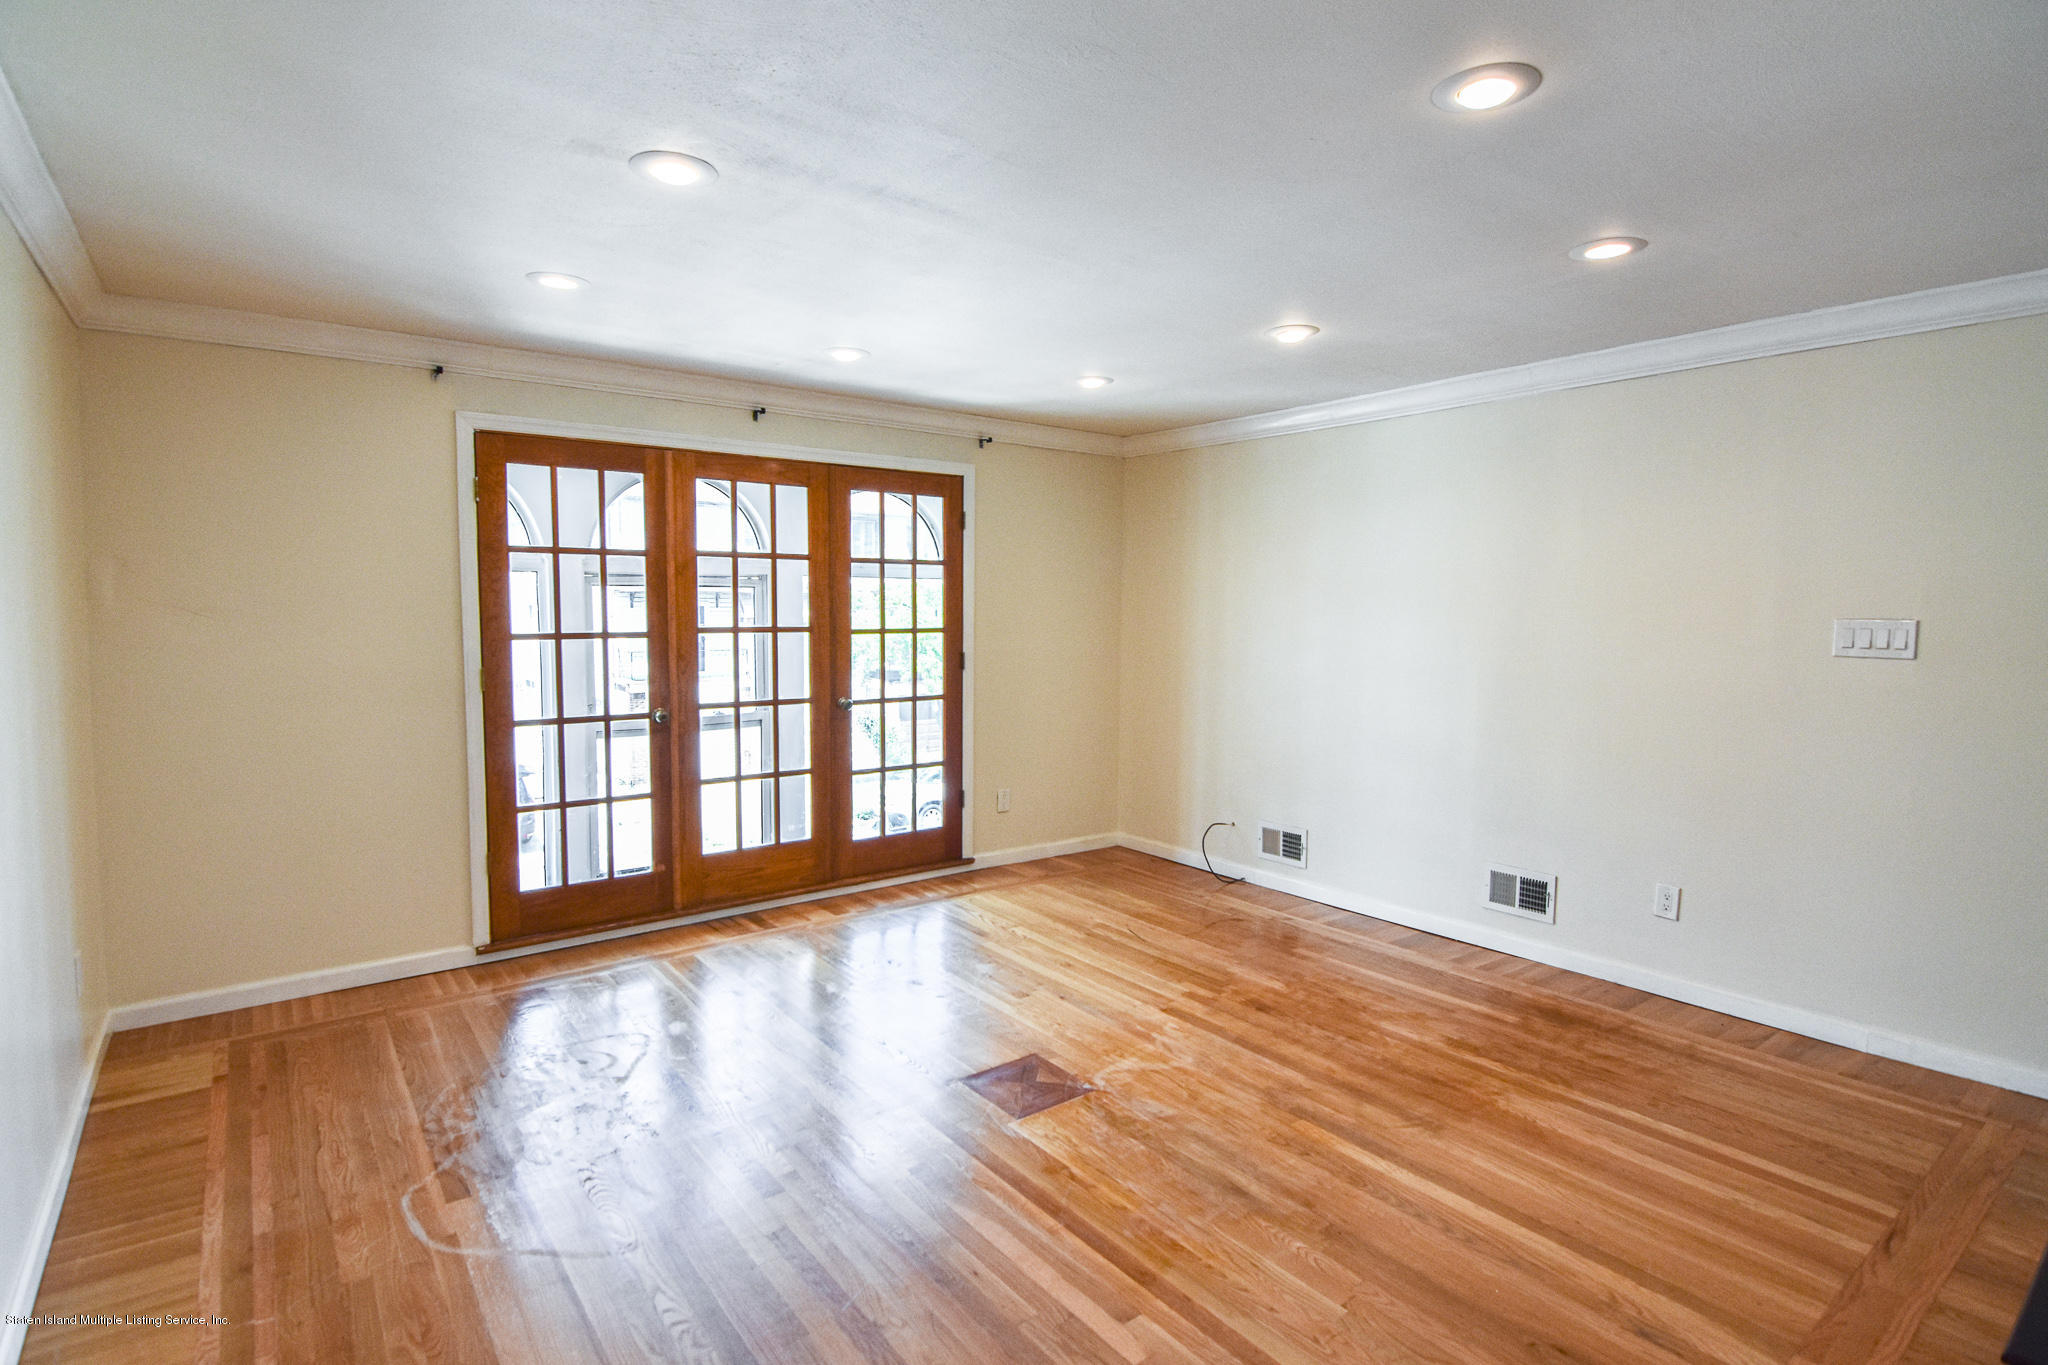 Single Family - Semi-Attached 12 Ebey Lane  Staten Island, NY 10312, MLS-1131132-8